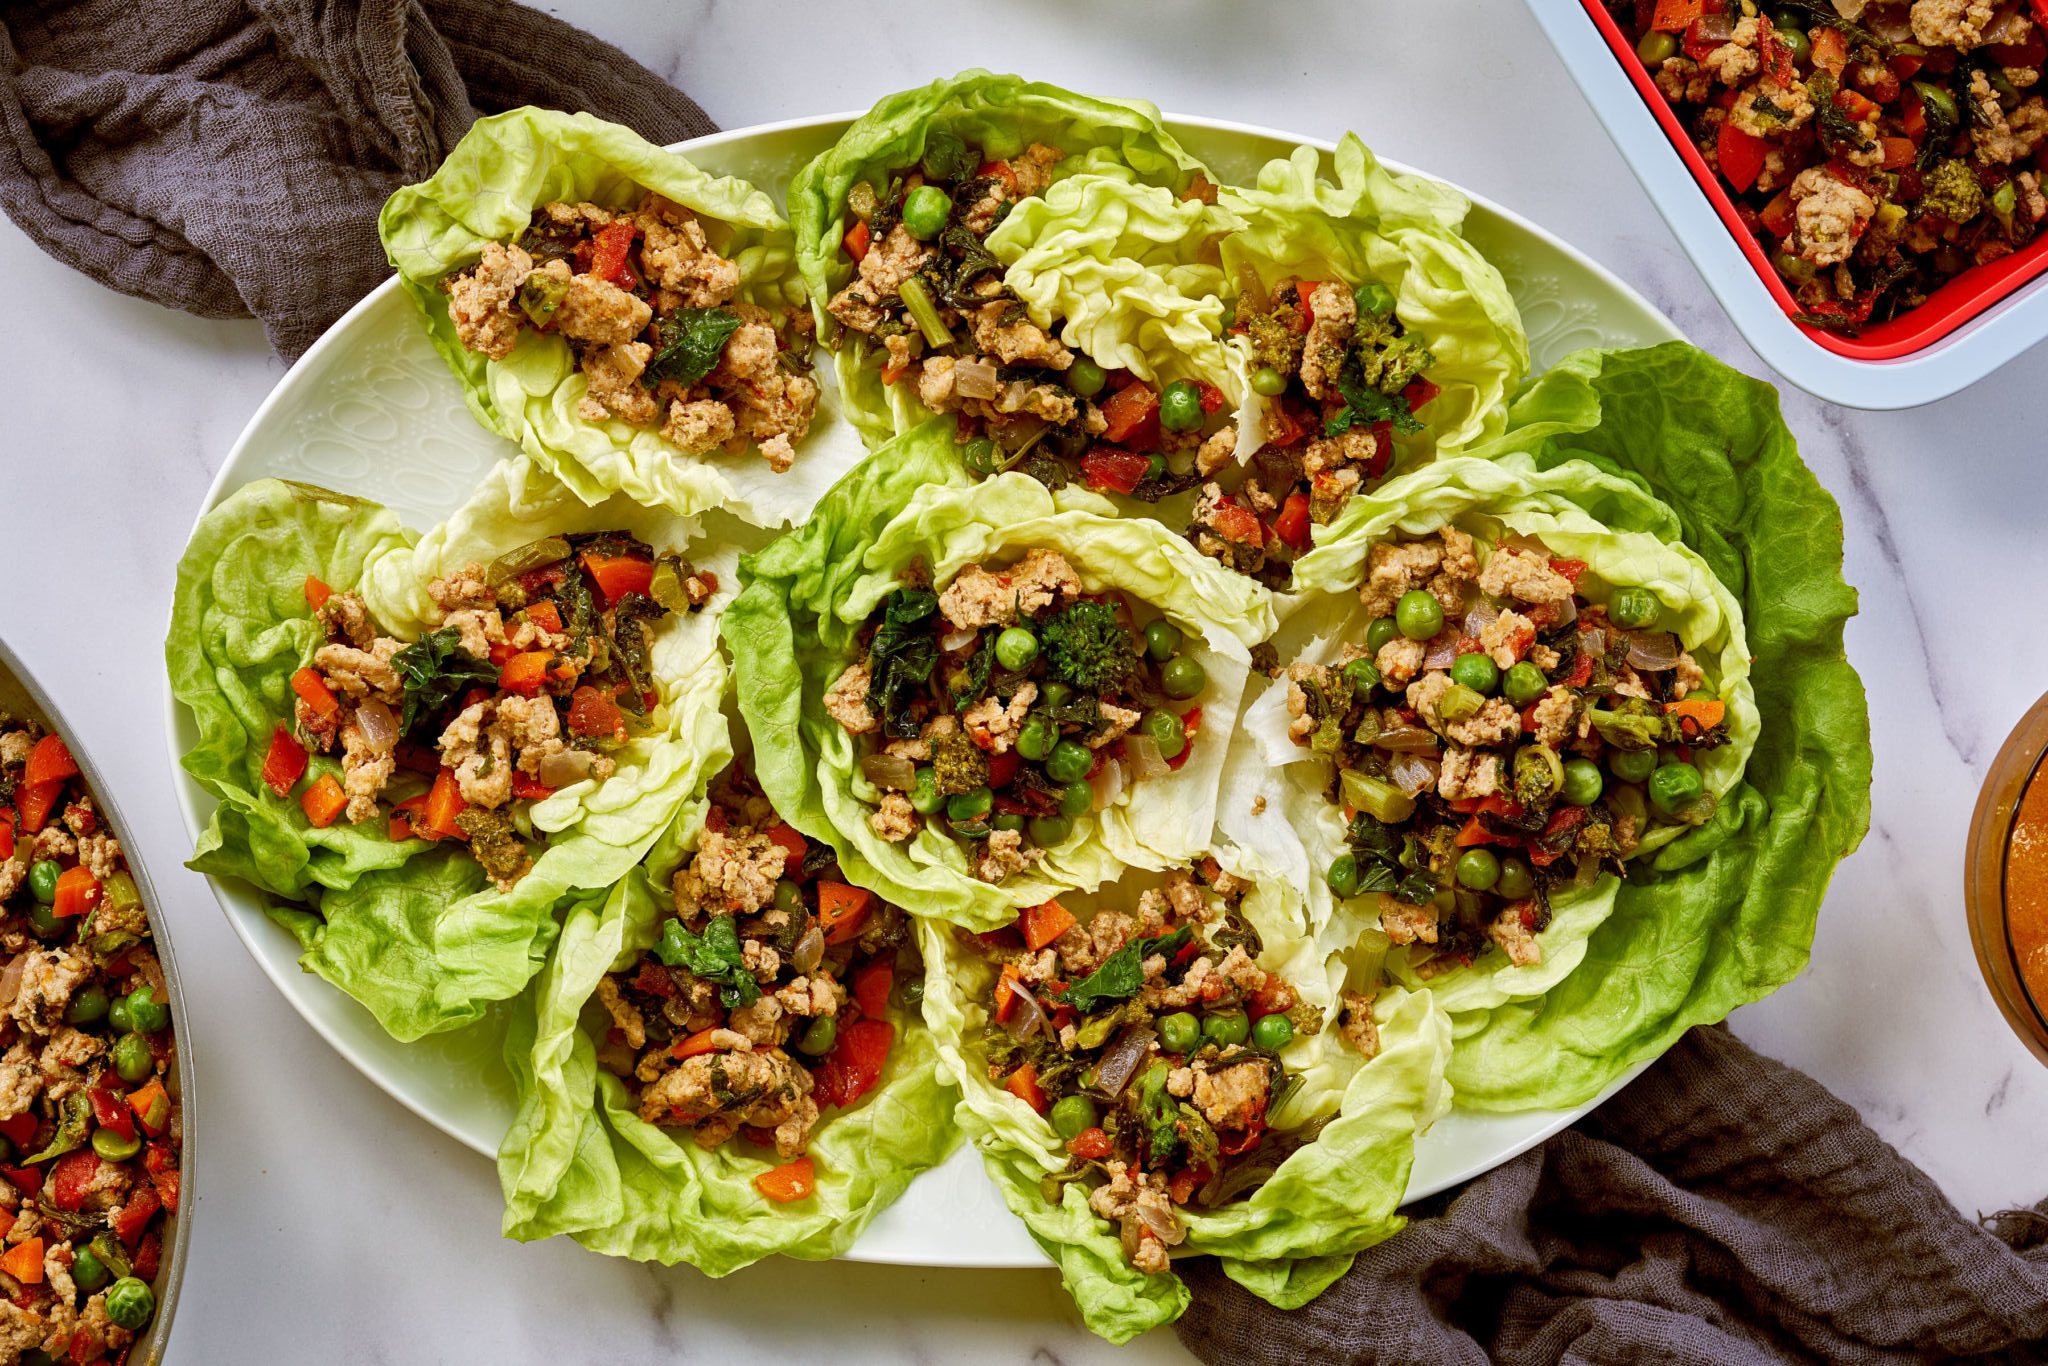 Turkey and Broccoli Rabe Lettuce Cups with Thai Chili Ginger and Sweet and Sour Dipping Sauces